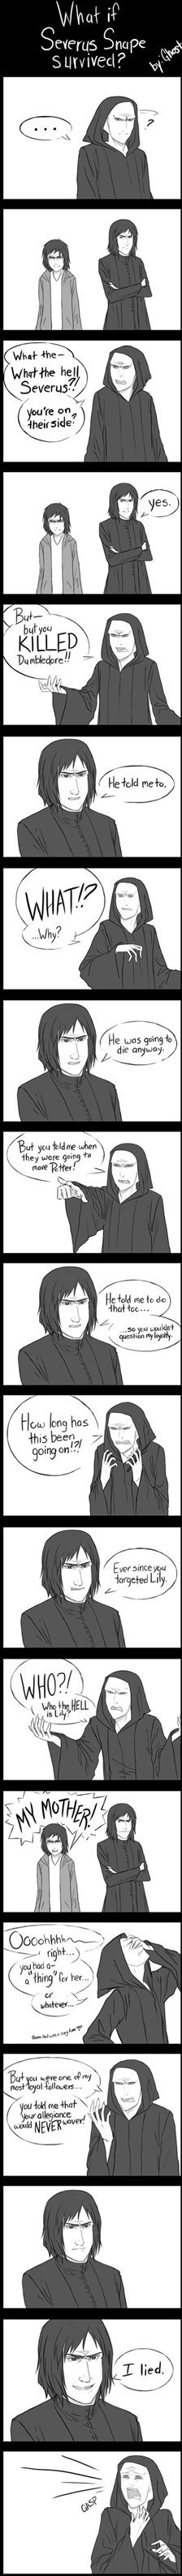 Harry Potter Severus Snape funny - 7454670080